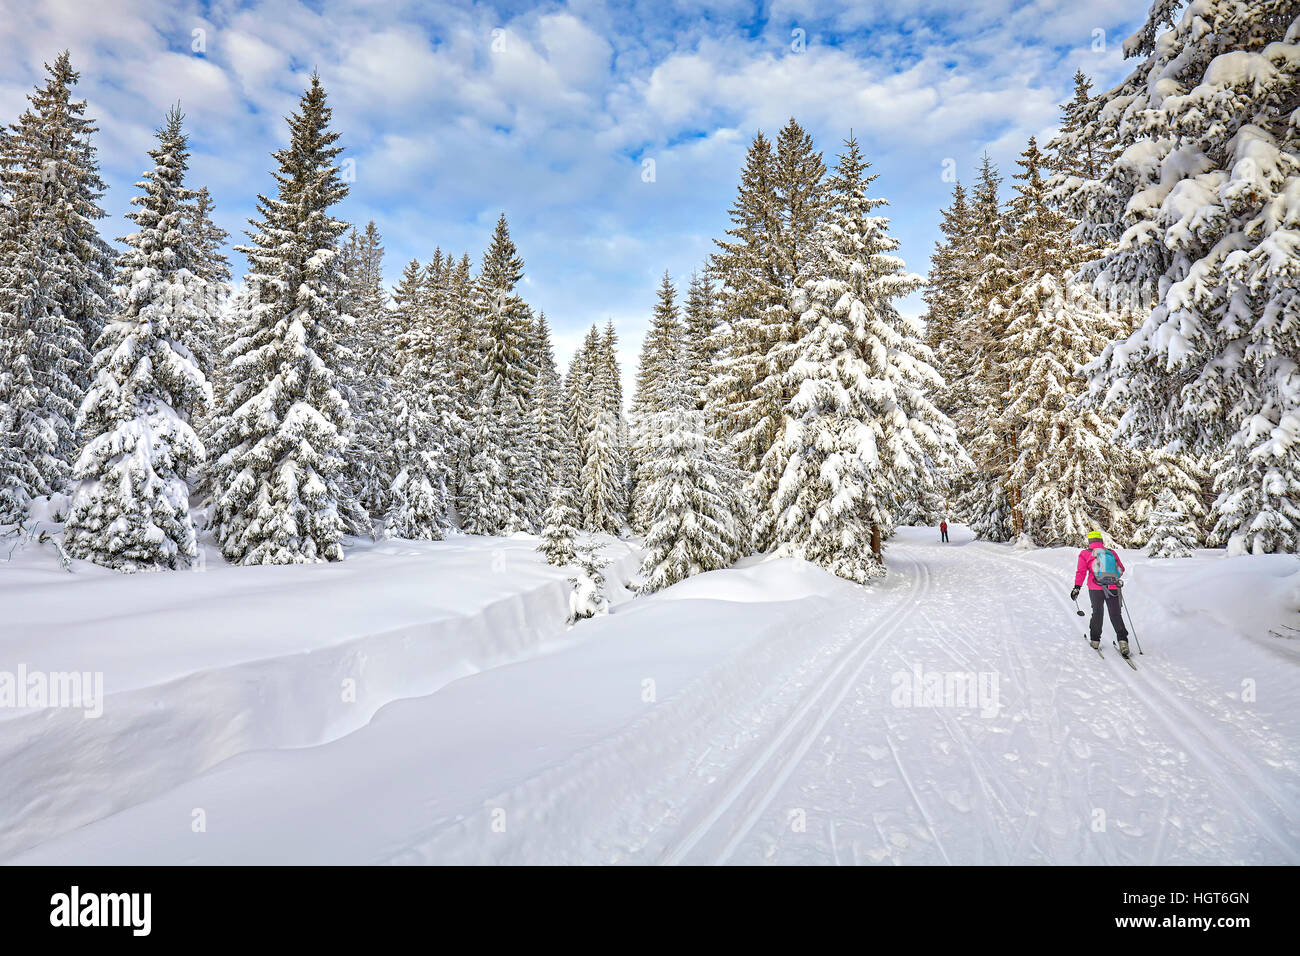 Winter landscape with cross-country skiing tracks, skier and snow covered trees. - Stock Image